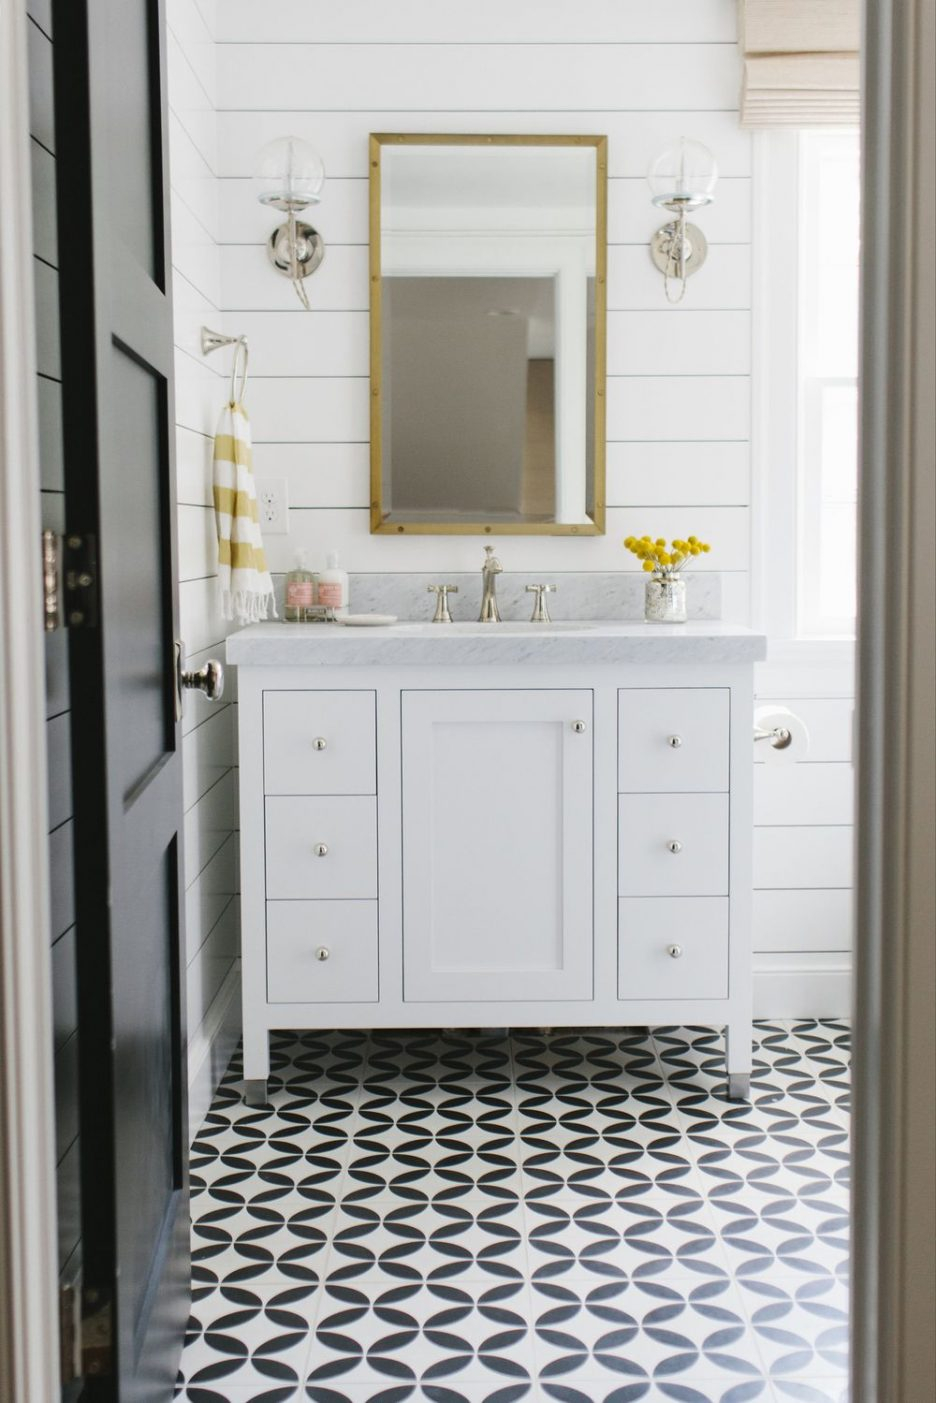 Elite Black And White Tile Lowes Vintage Black And White Bathroom Ideas for Good quality Vintage Black And White Bathroom Ideas